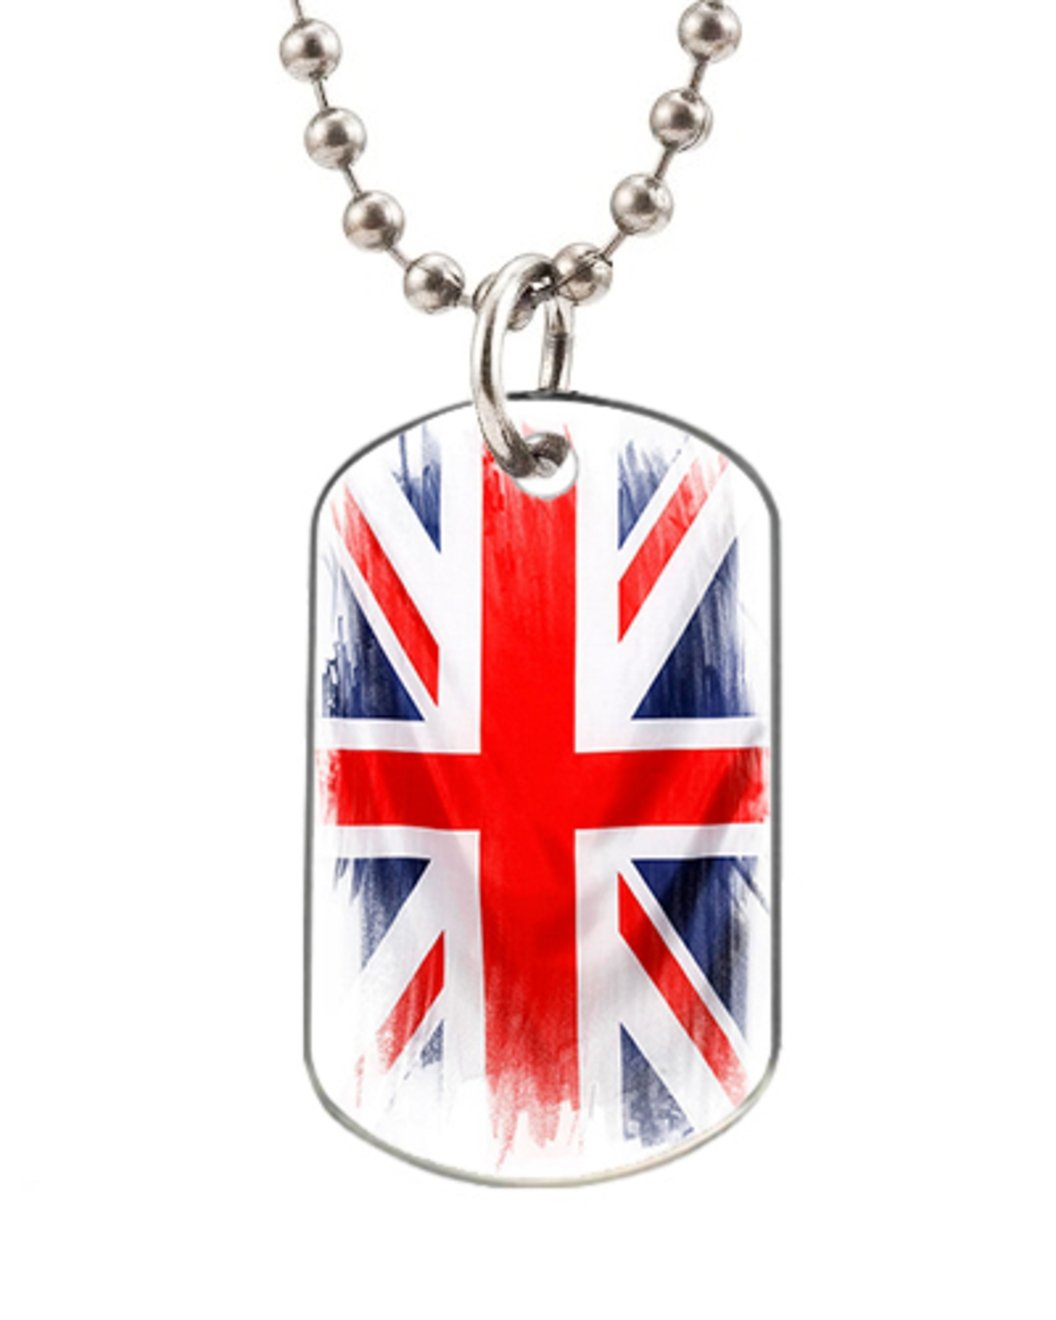 Union Jack Personalized Custom Fashion Dog Tag, Large Size (Dogtag Necklace with 30